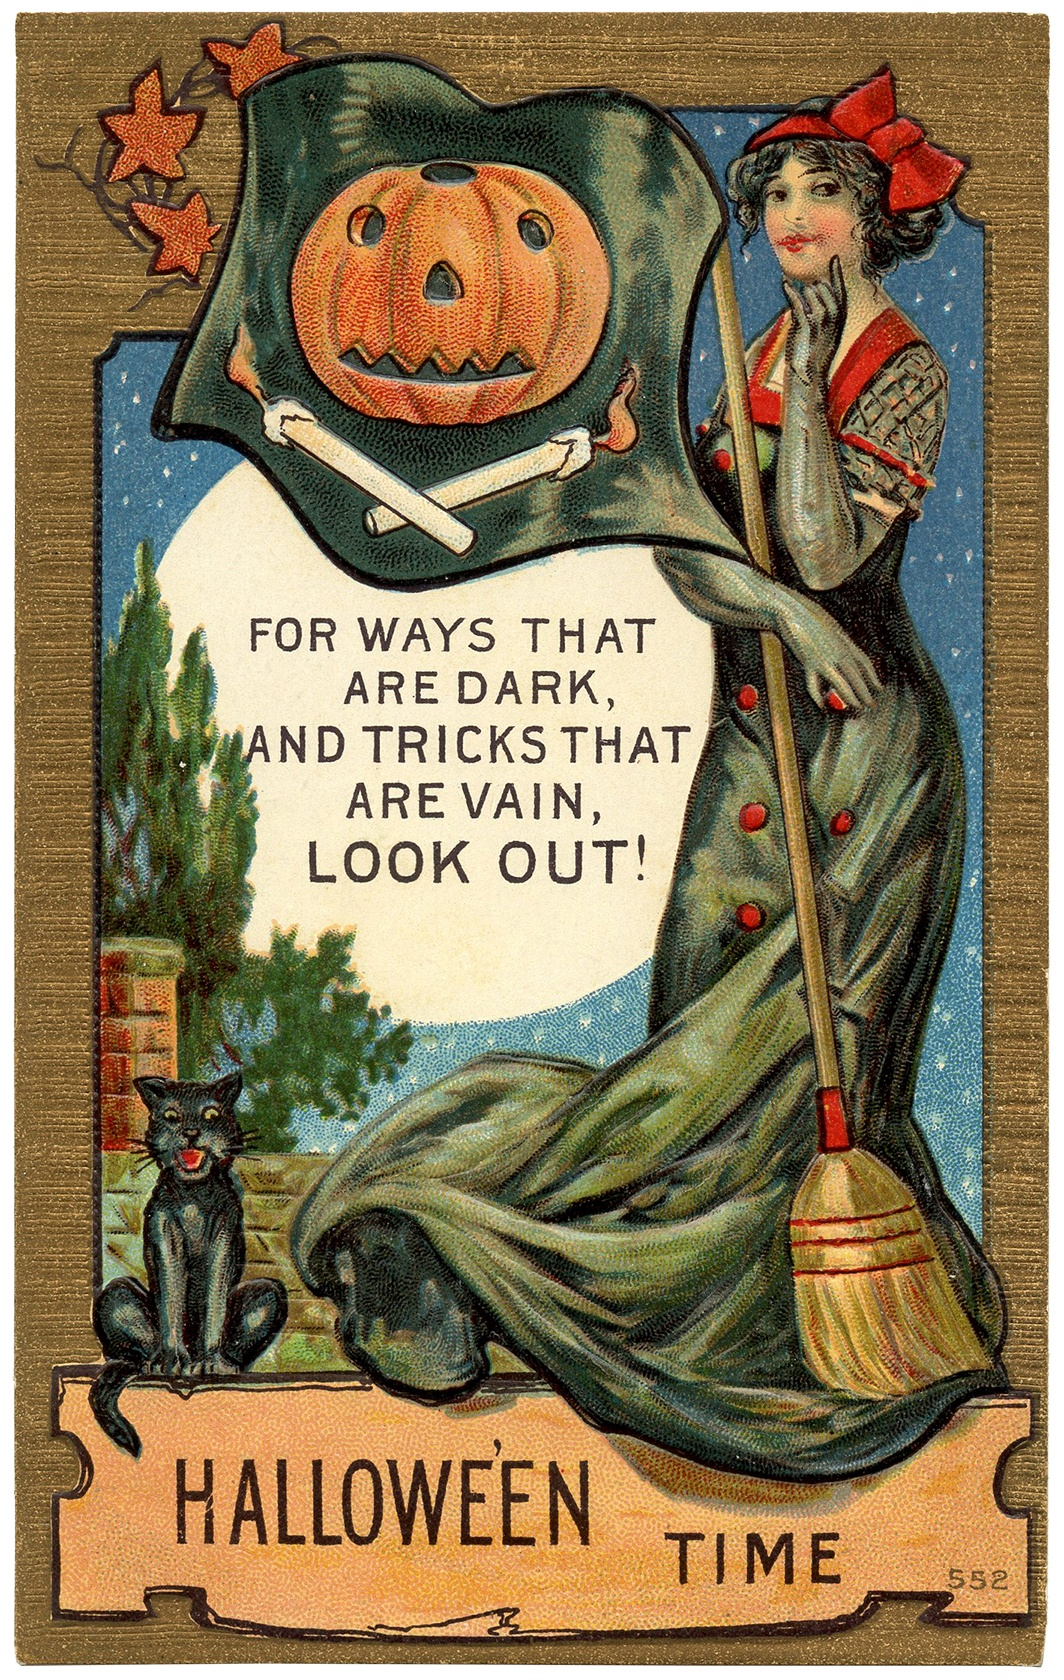 Vintage Halloween Postcard Image - The Graphics Fairy - Free Printable Vintage Halloween Images